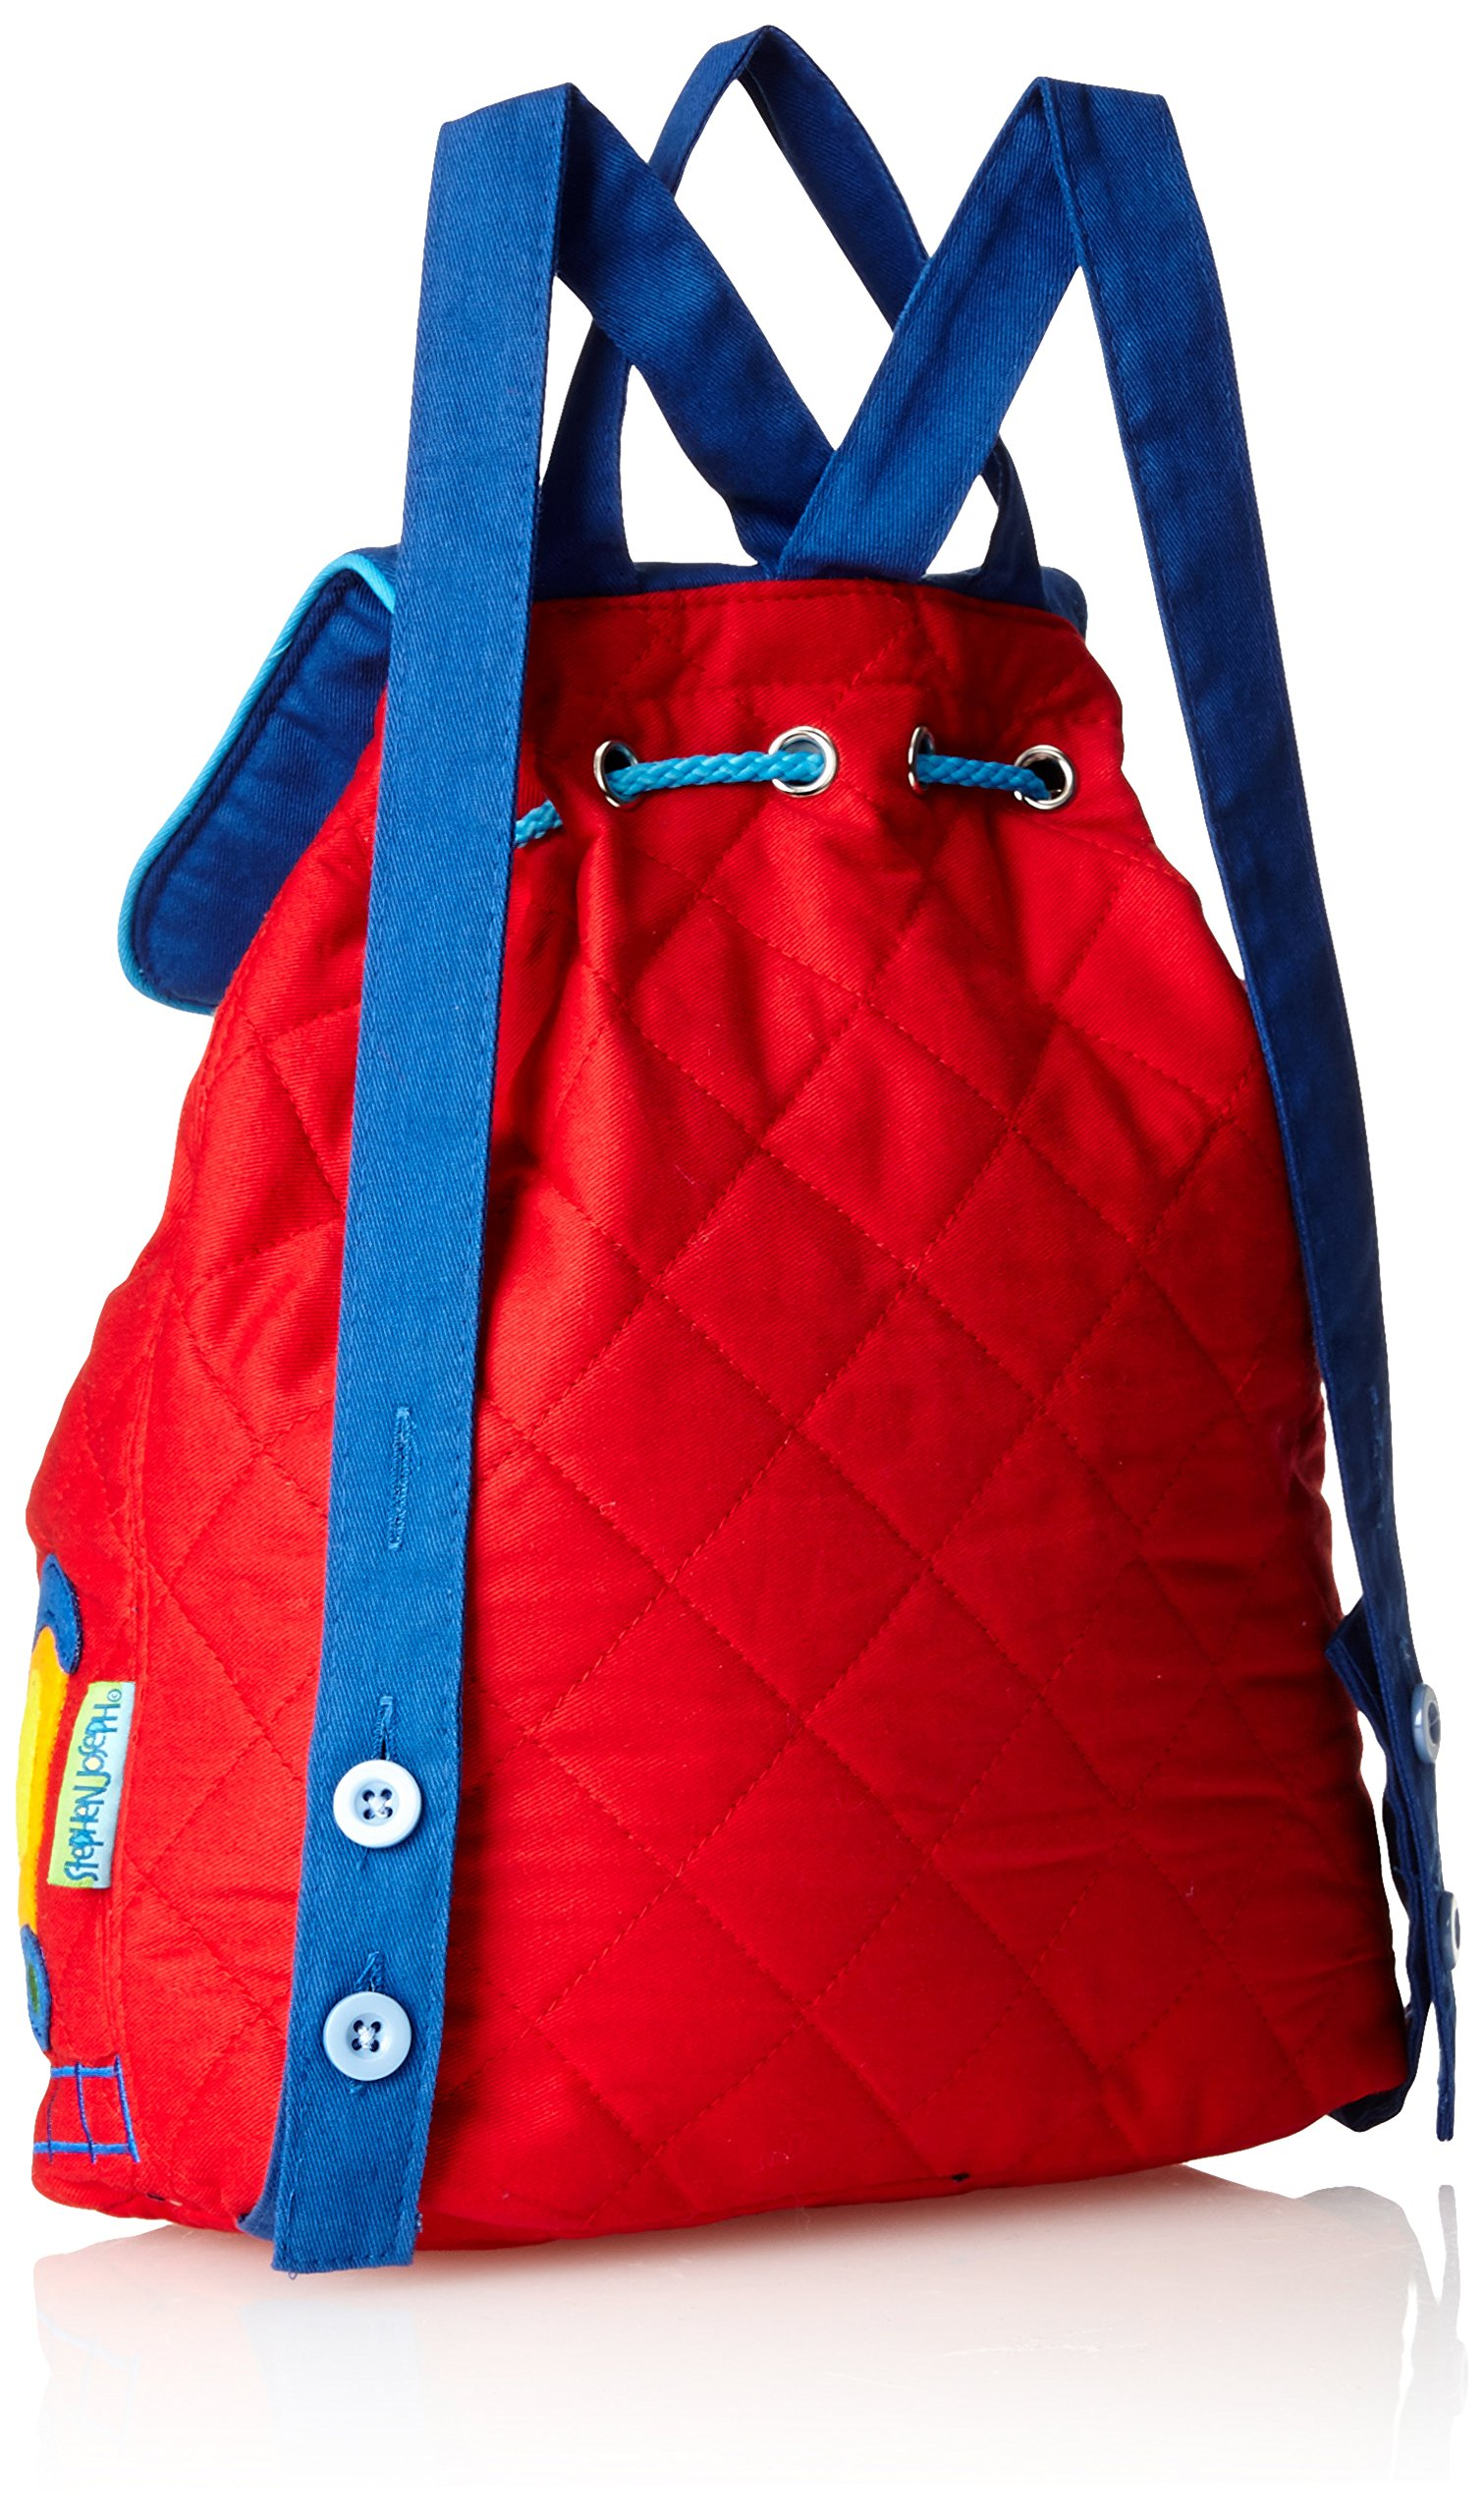 Stephen Joseph Quilted Backpack, Train |